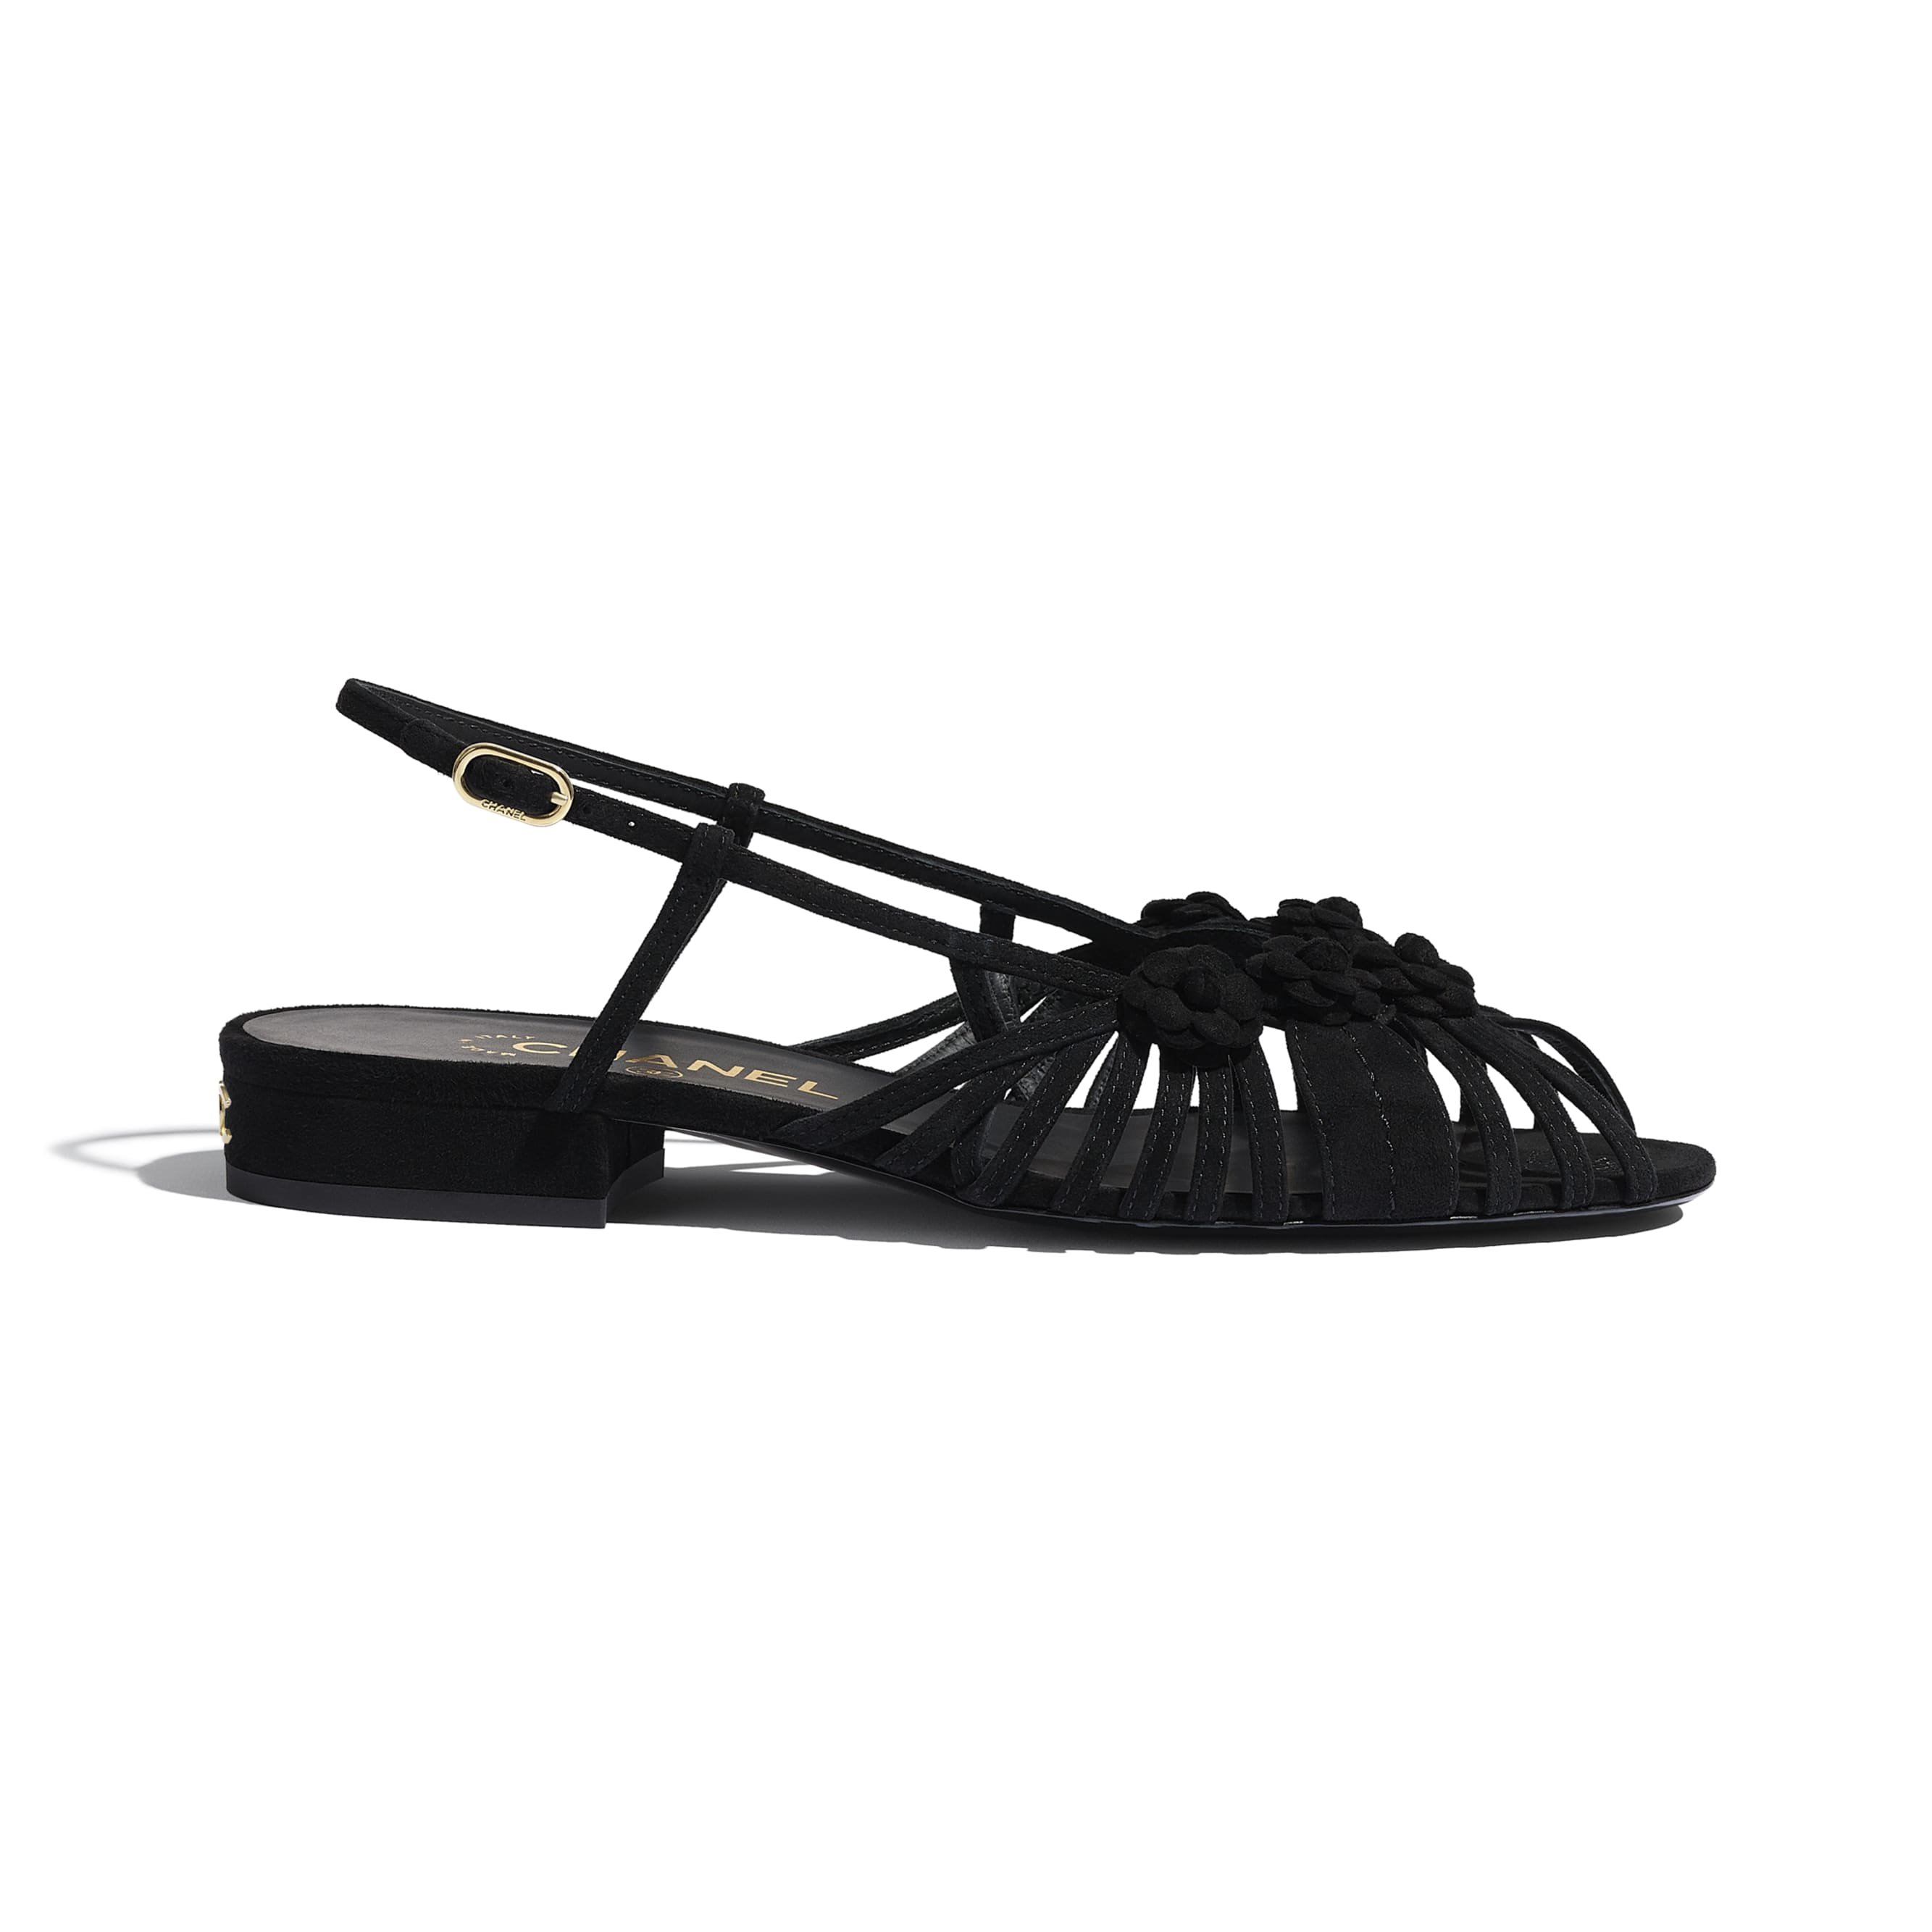 Sandals - Black - Suede Kidskin - CHANEL - Default view - see standard sized version